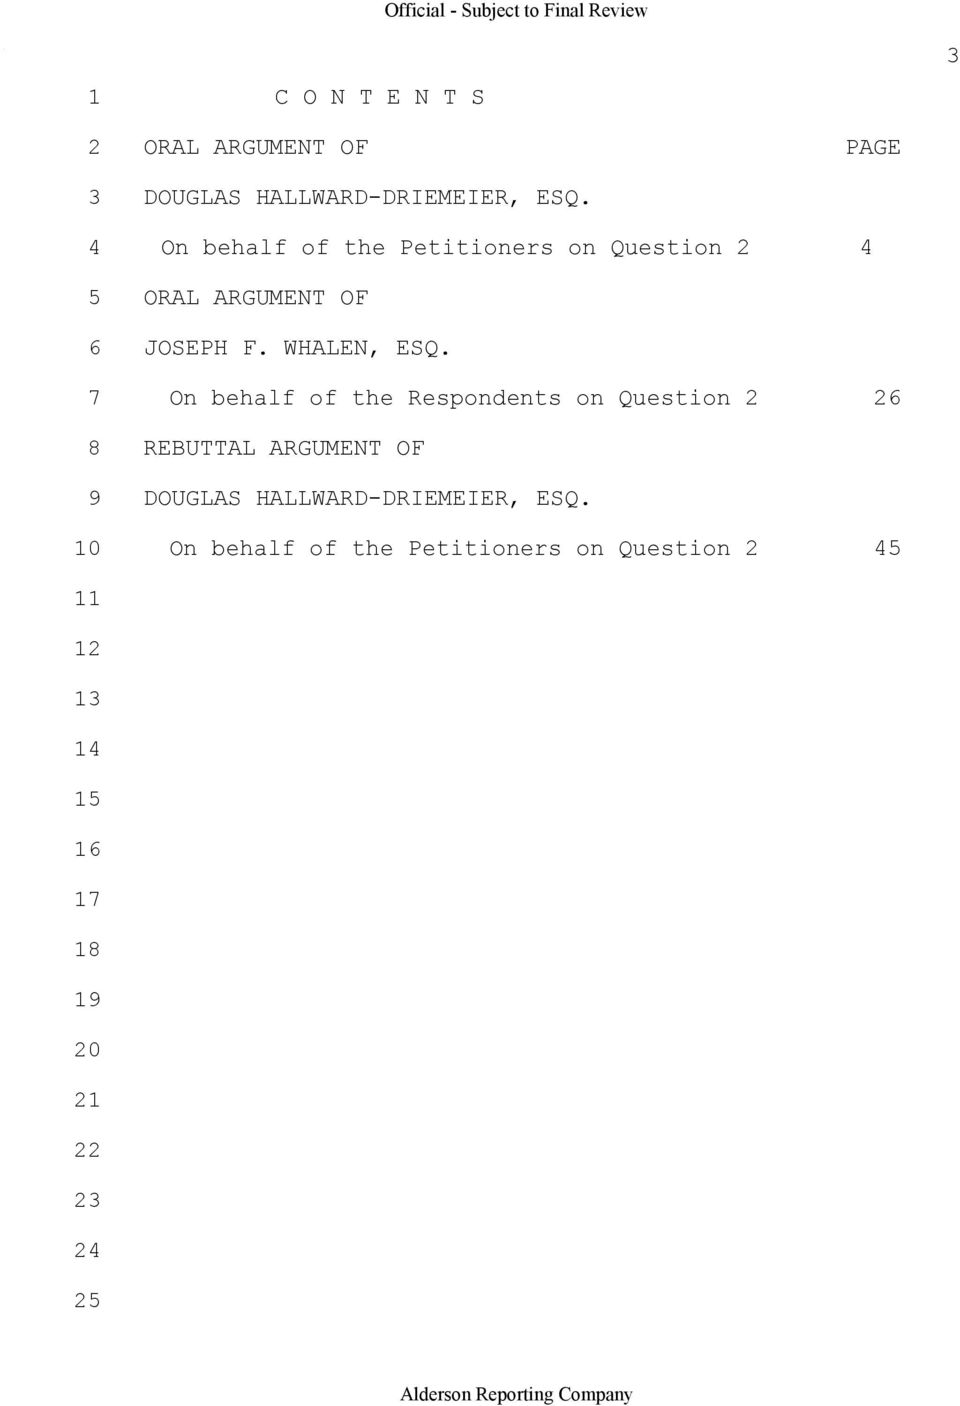 7 On behalf of the Respondents on Question 2 26 8 REBUTTAL ARGUMENT OF 9 DOUGLAS HALLWARD